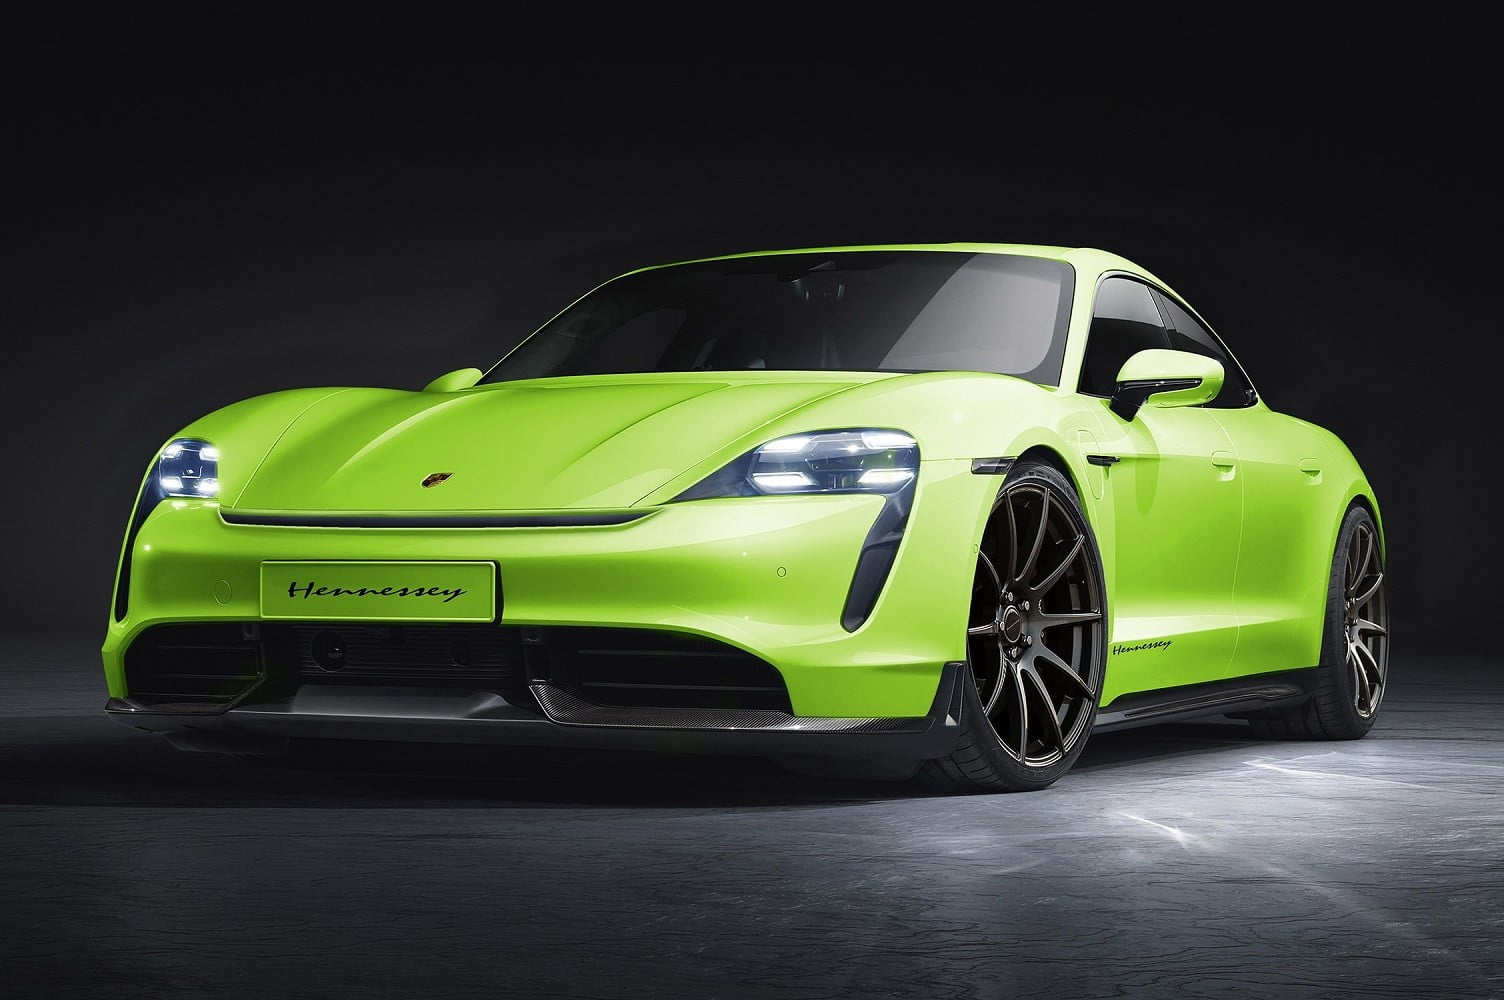 The Porsche Taycan is the first EV tuner Hennessey is putting its hands into